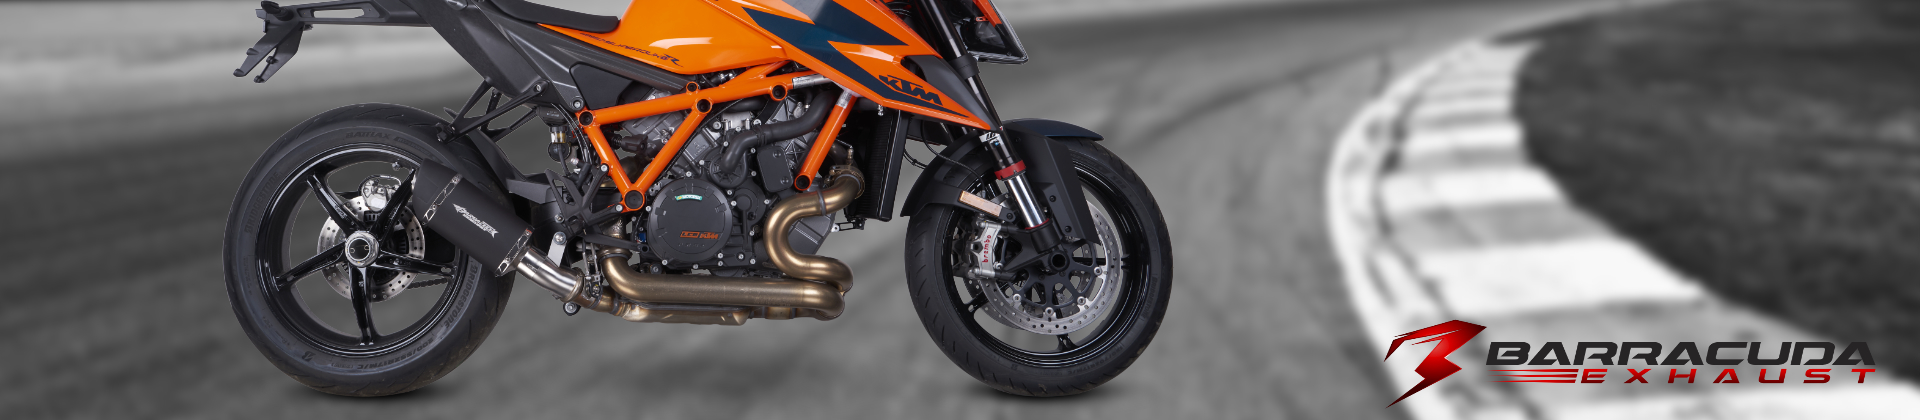 KTM 1290 Superduke - in Vorbereitung! Coming